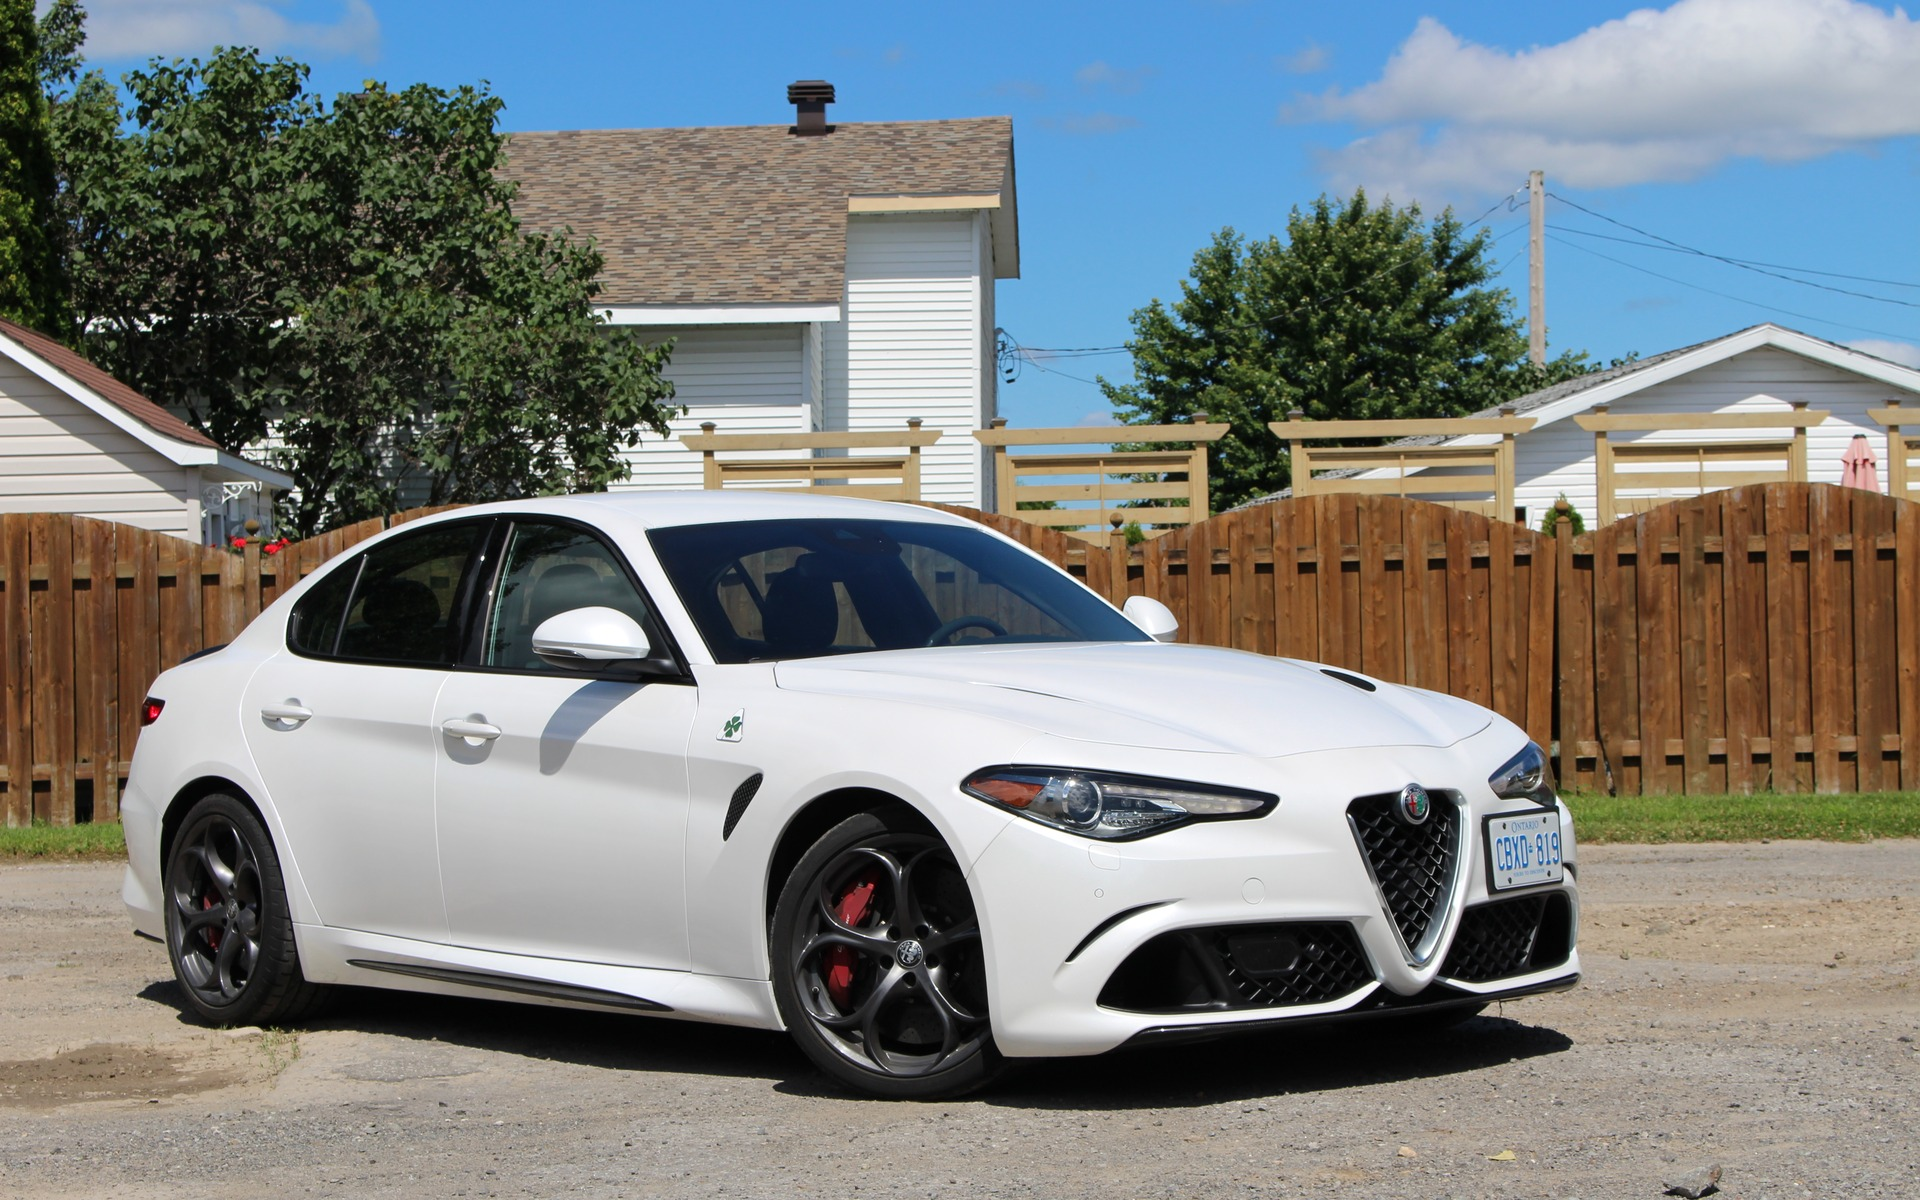 Alfa Romeo Giulia Range Debut Video  Fiat 500 USA